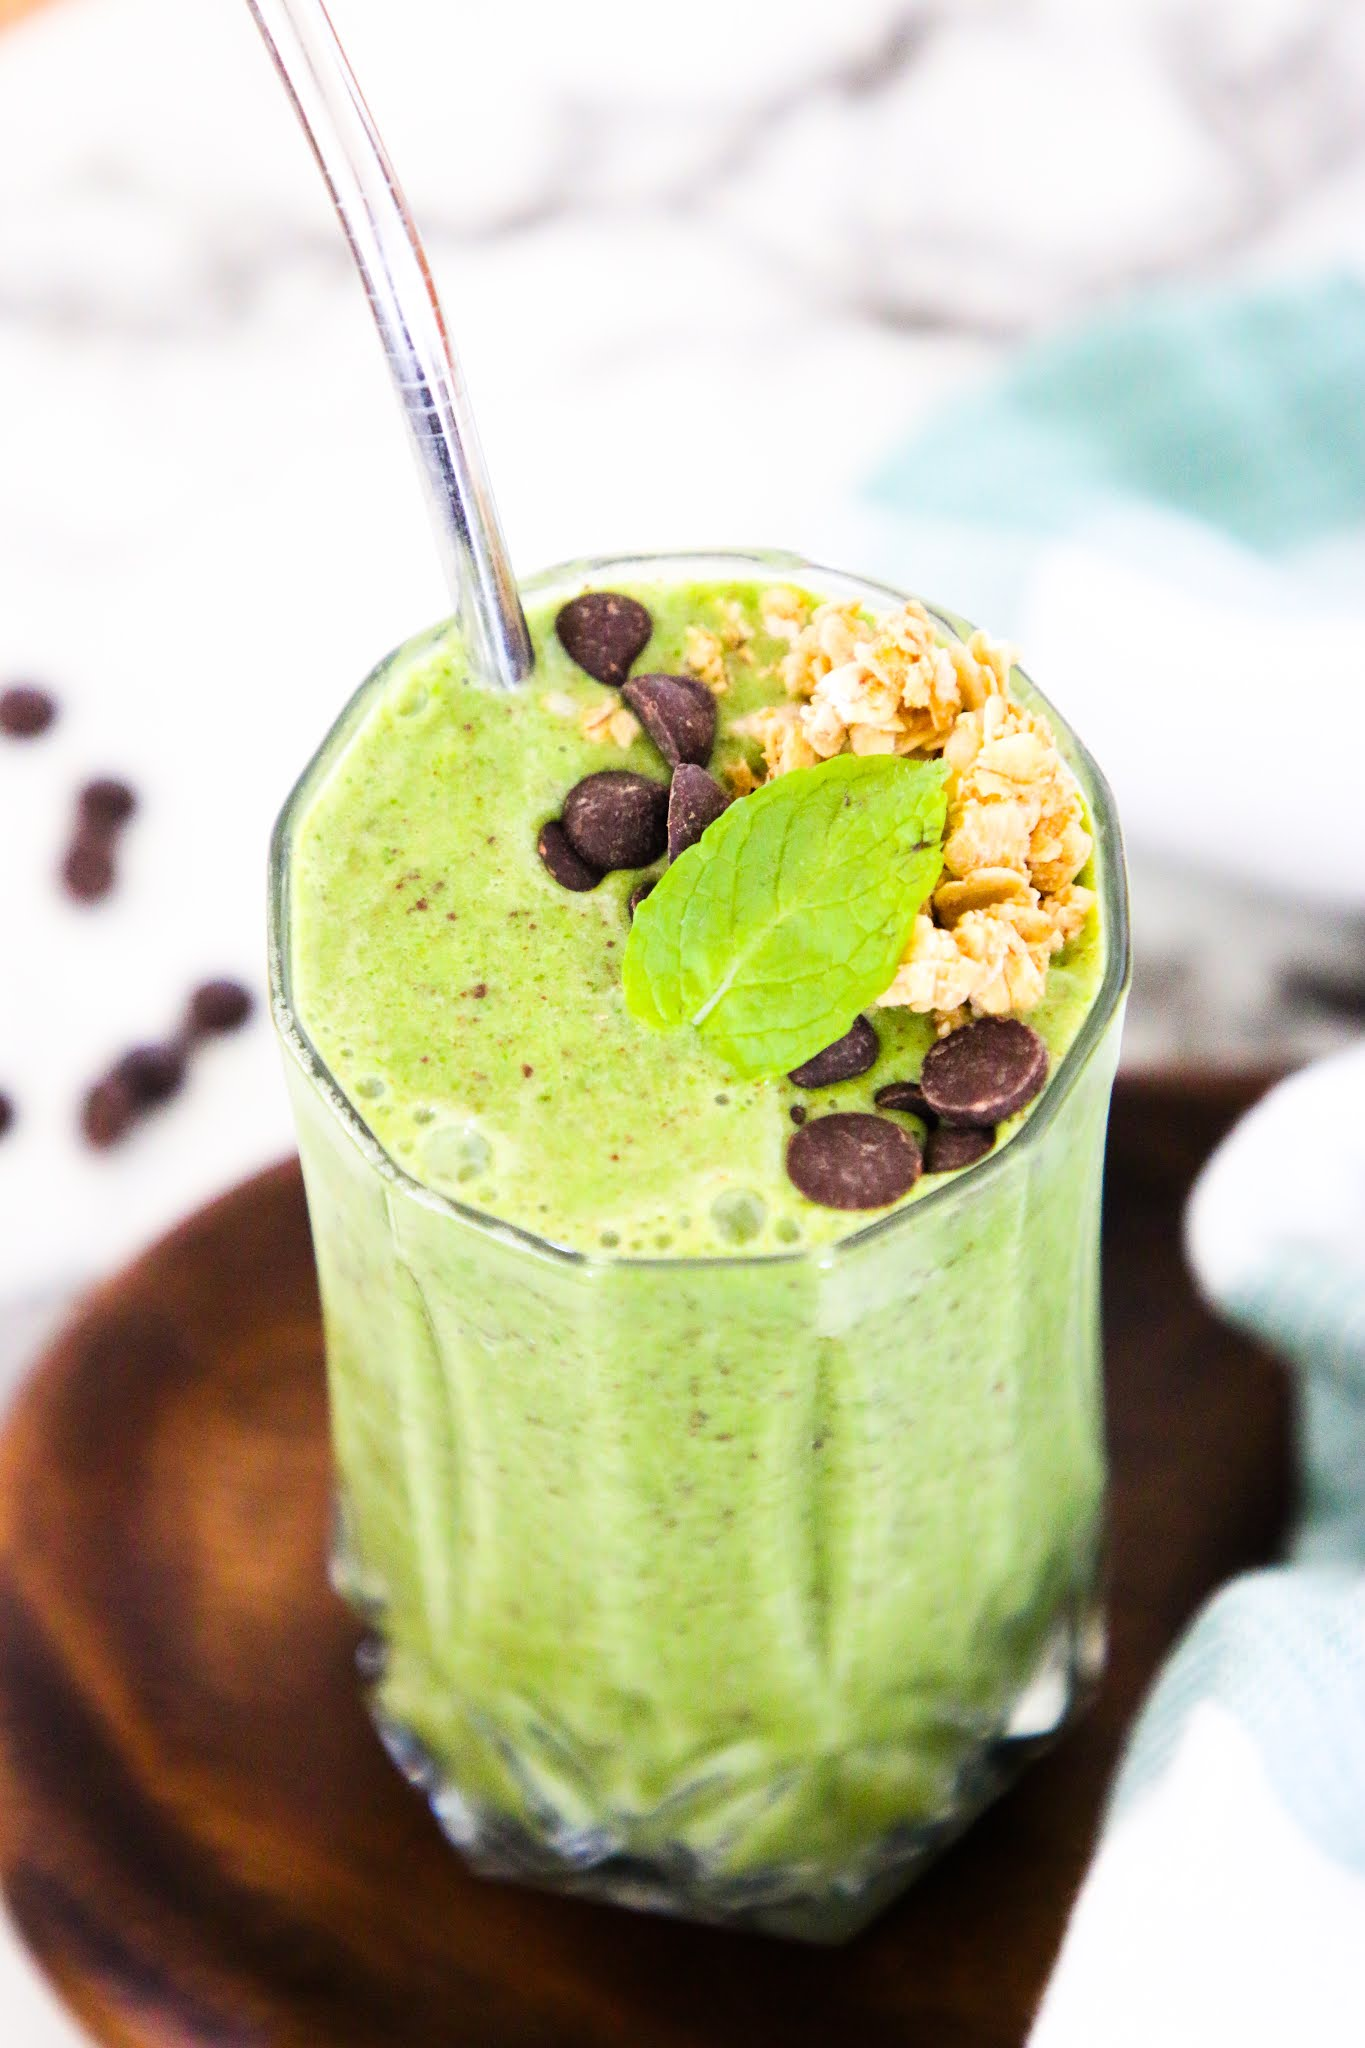 Health shamrock shake smoothie on a marble table top with a metal straw.